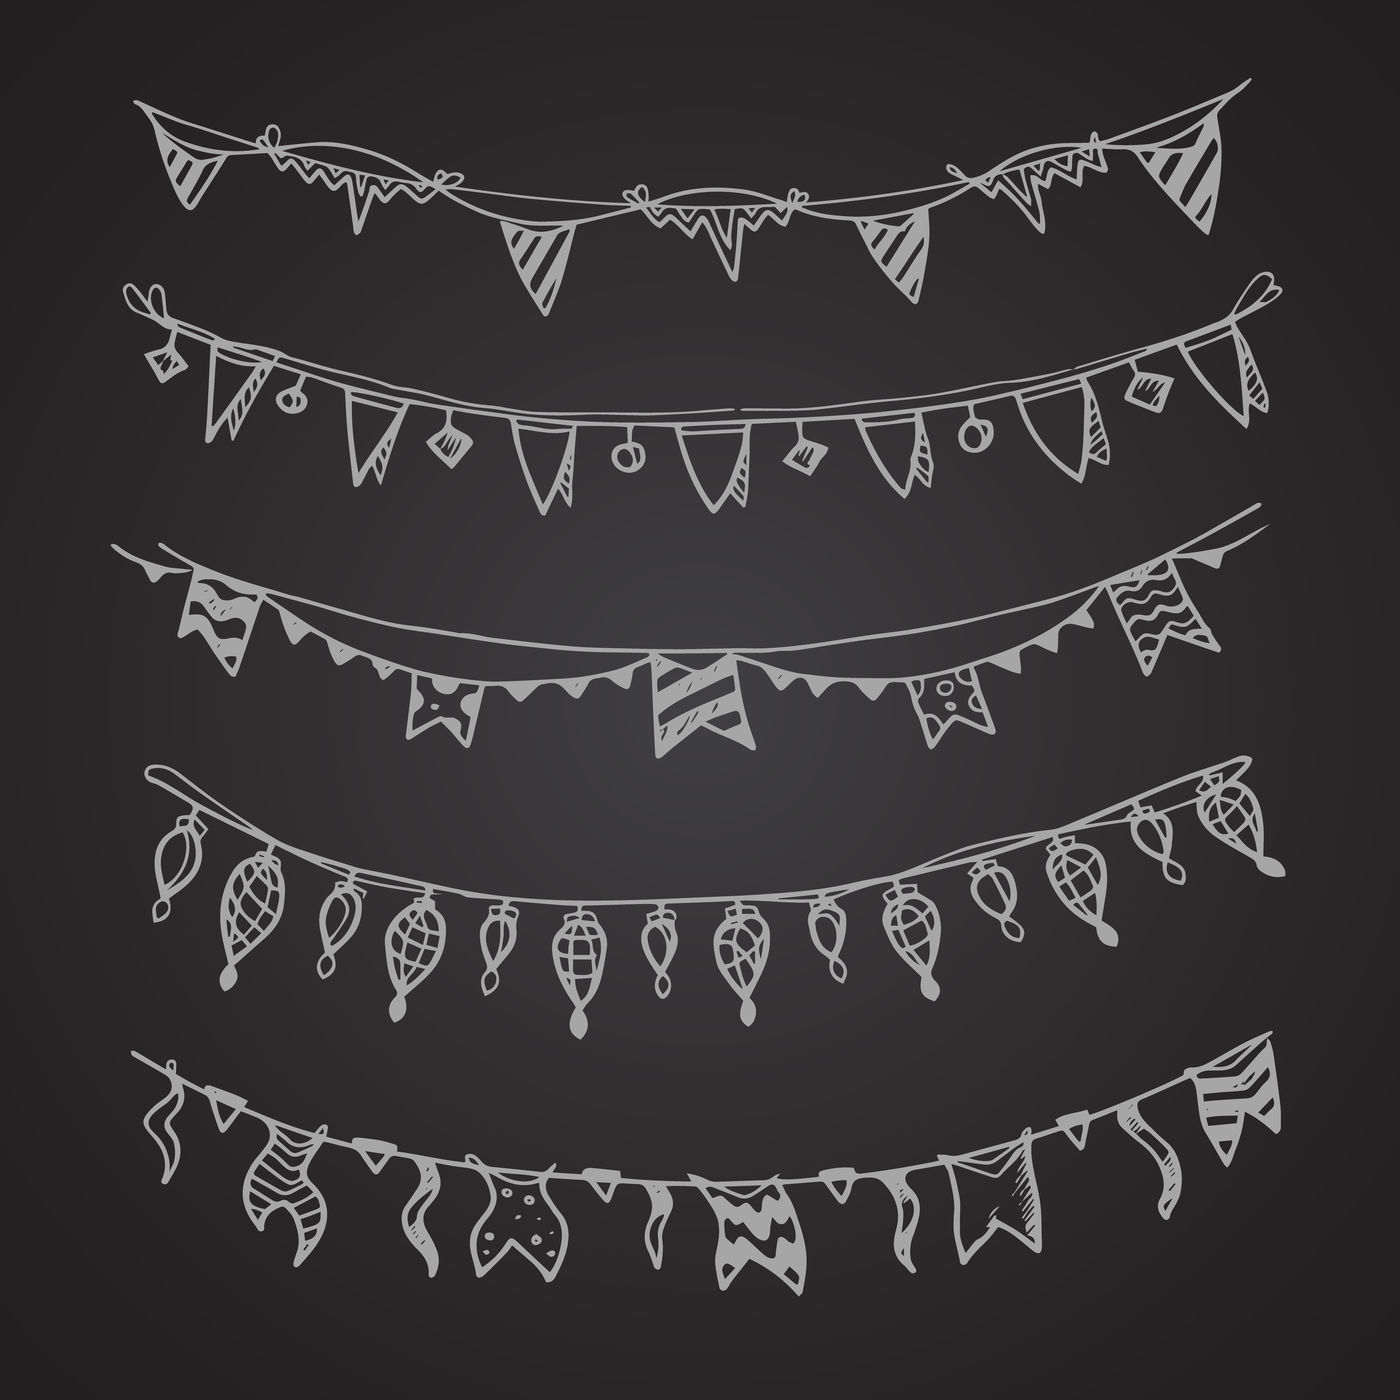 Celebration Holiday Garland Lamps Christmas And Wedding